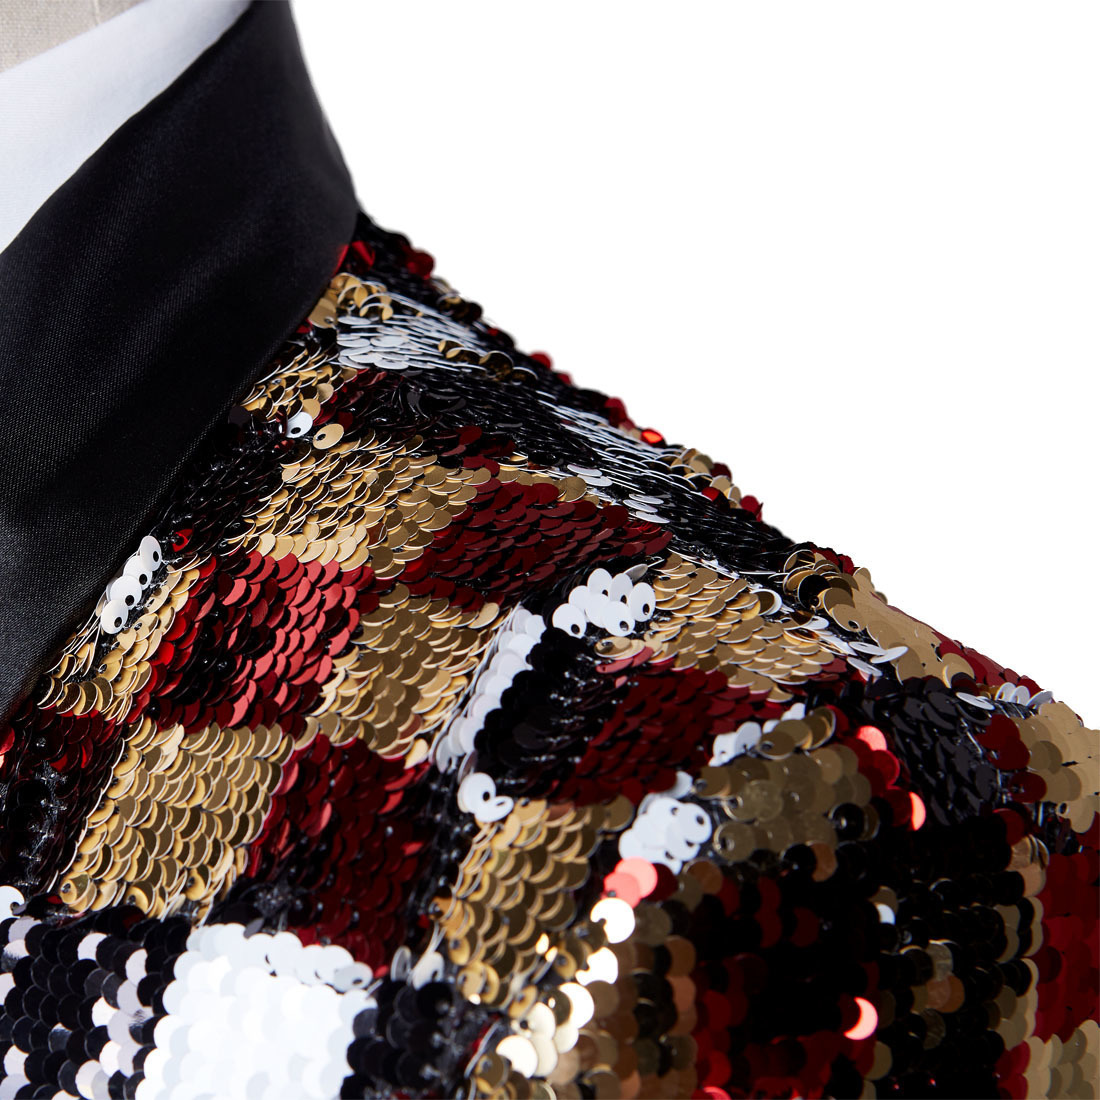 Pyjtrl Brand New Men Double-sided Colorful Plaid Red Gold White Black Sequins Blazer Design Dj Singer Suit Jacket Fashion OutfitQ190330